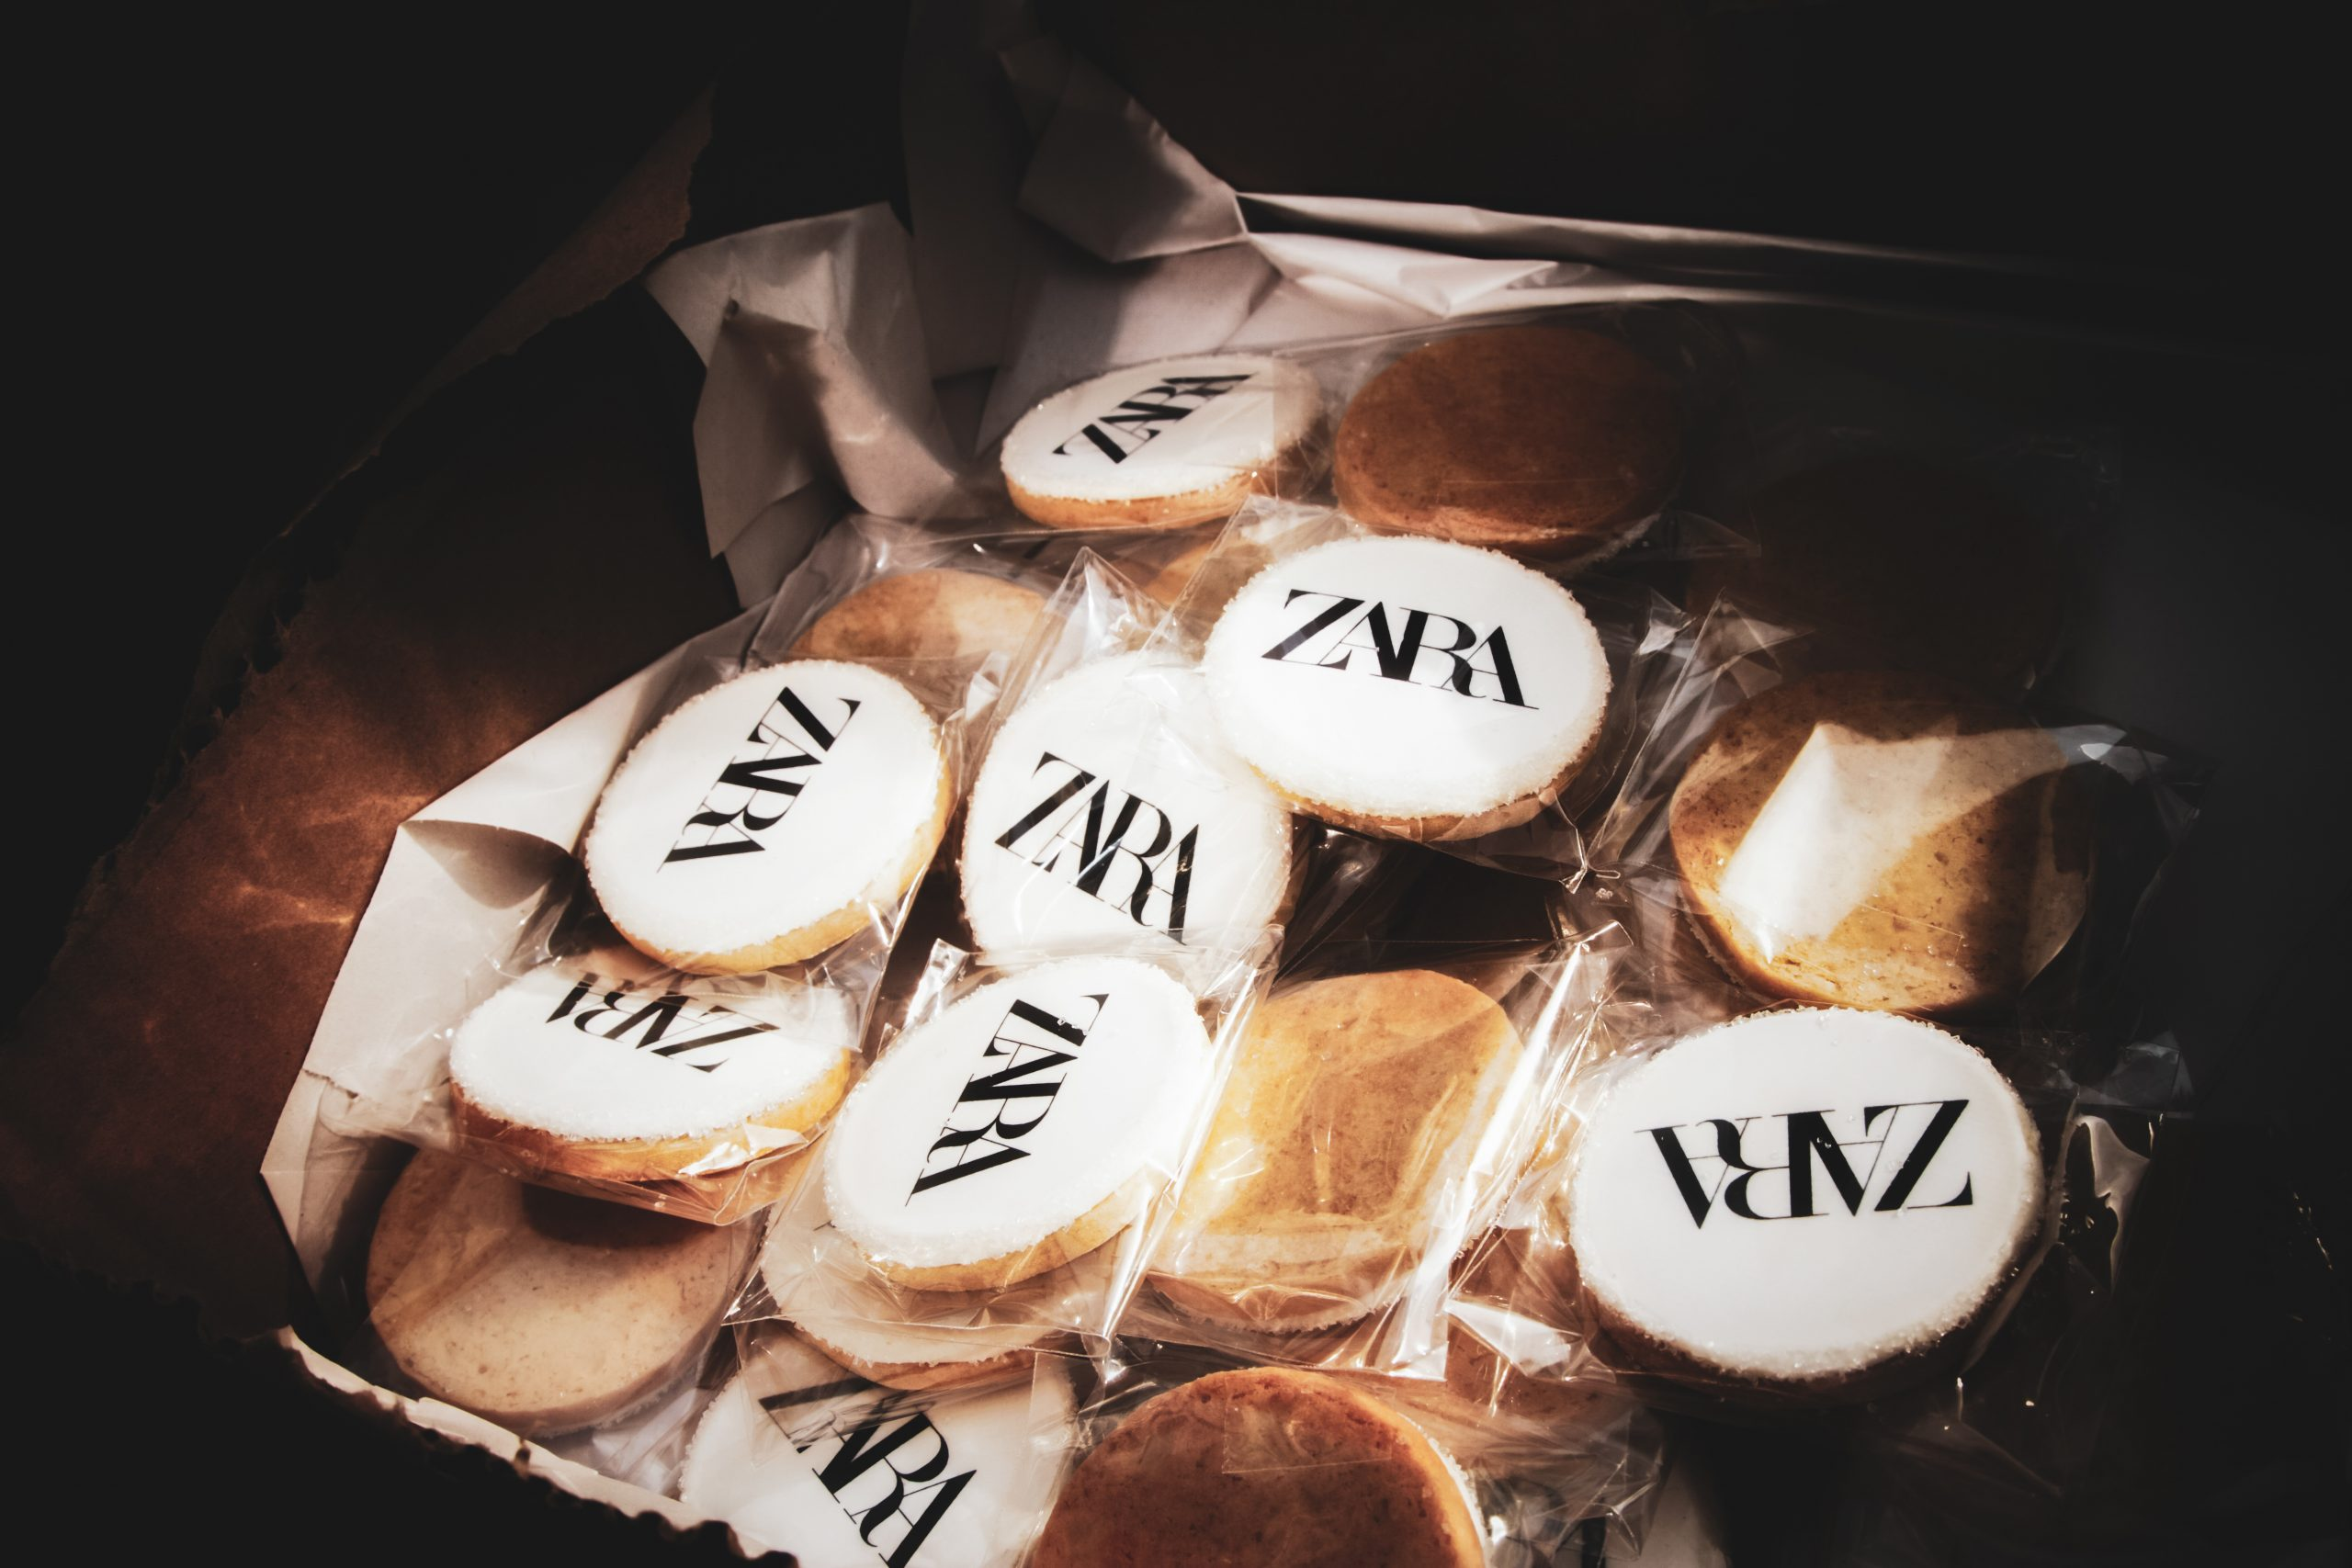 Branded Food Marketing Zara Cookies